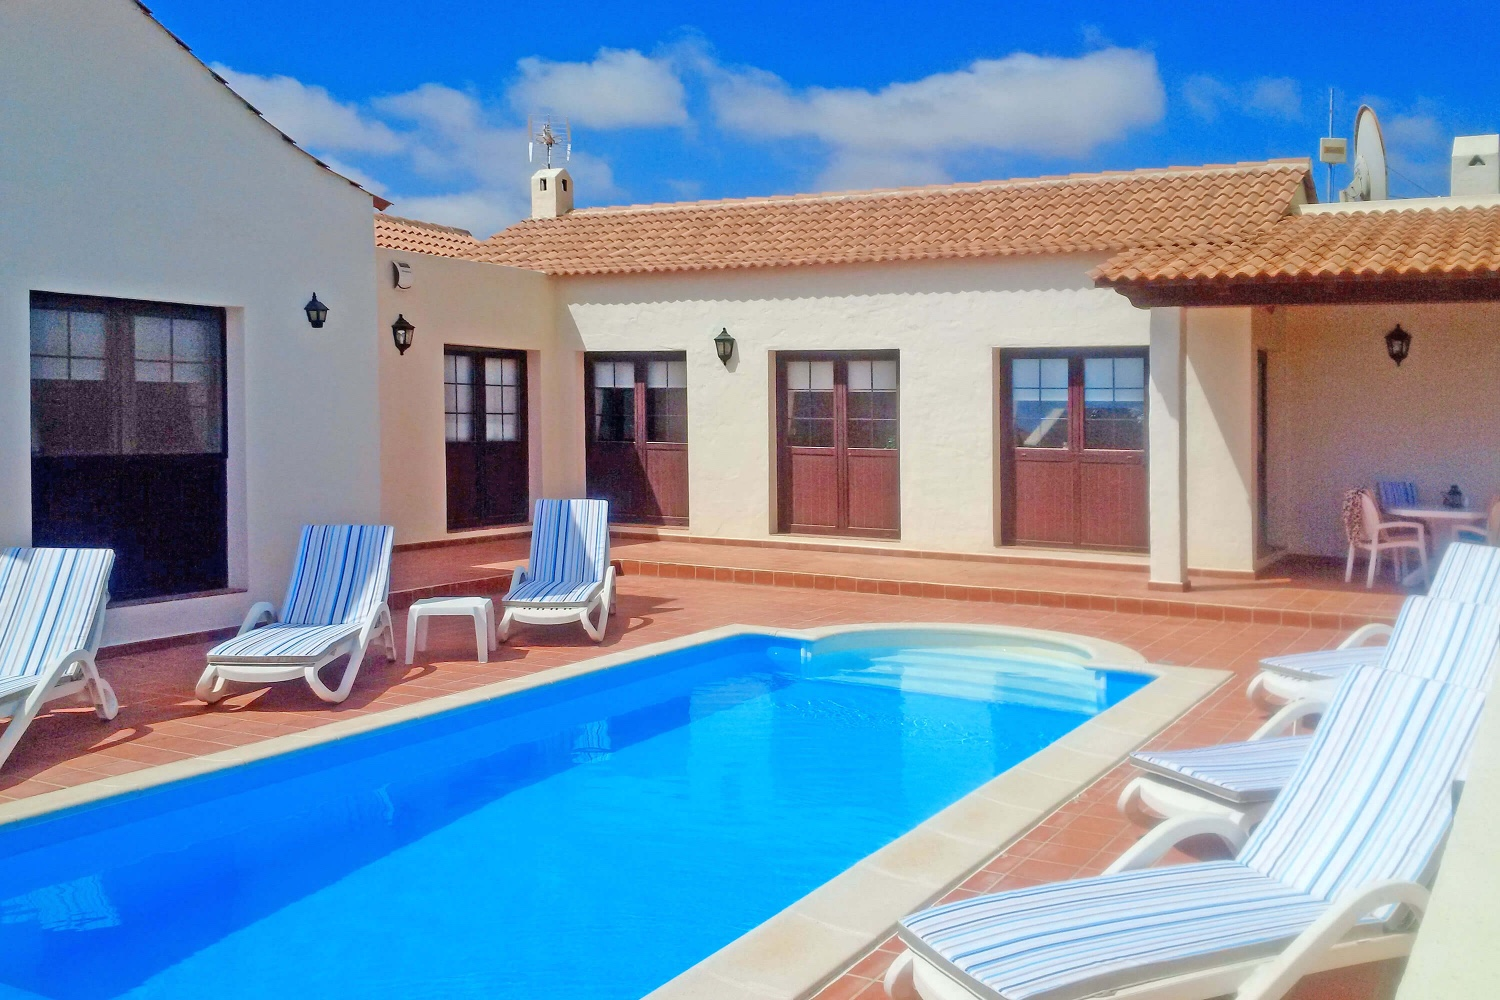 Traditional three bedroom villa with private pool and surrounded by beautiful volcanic landscape near the coast